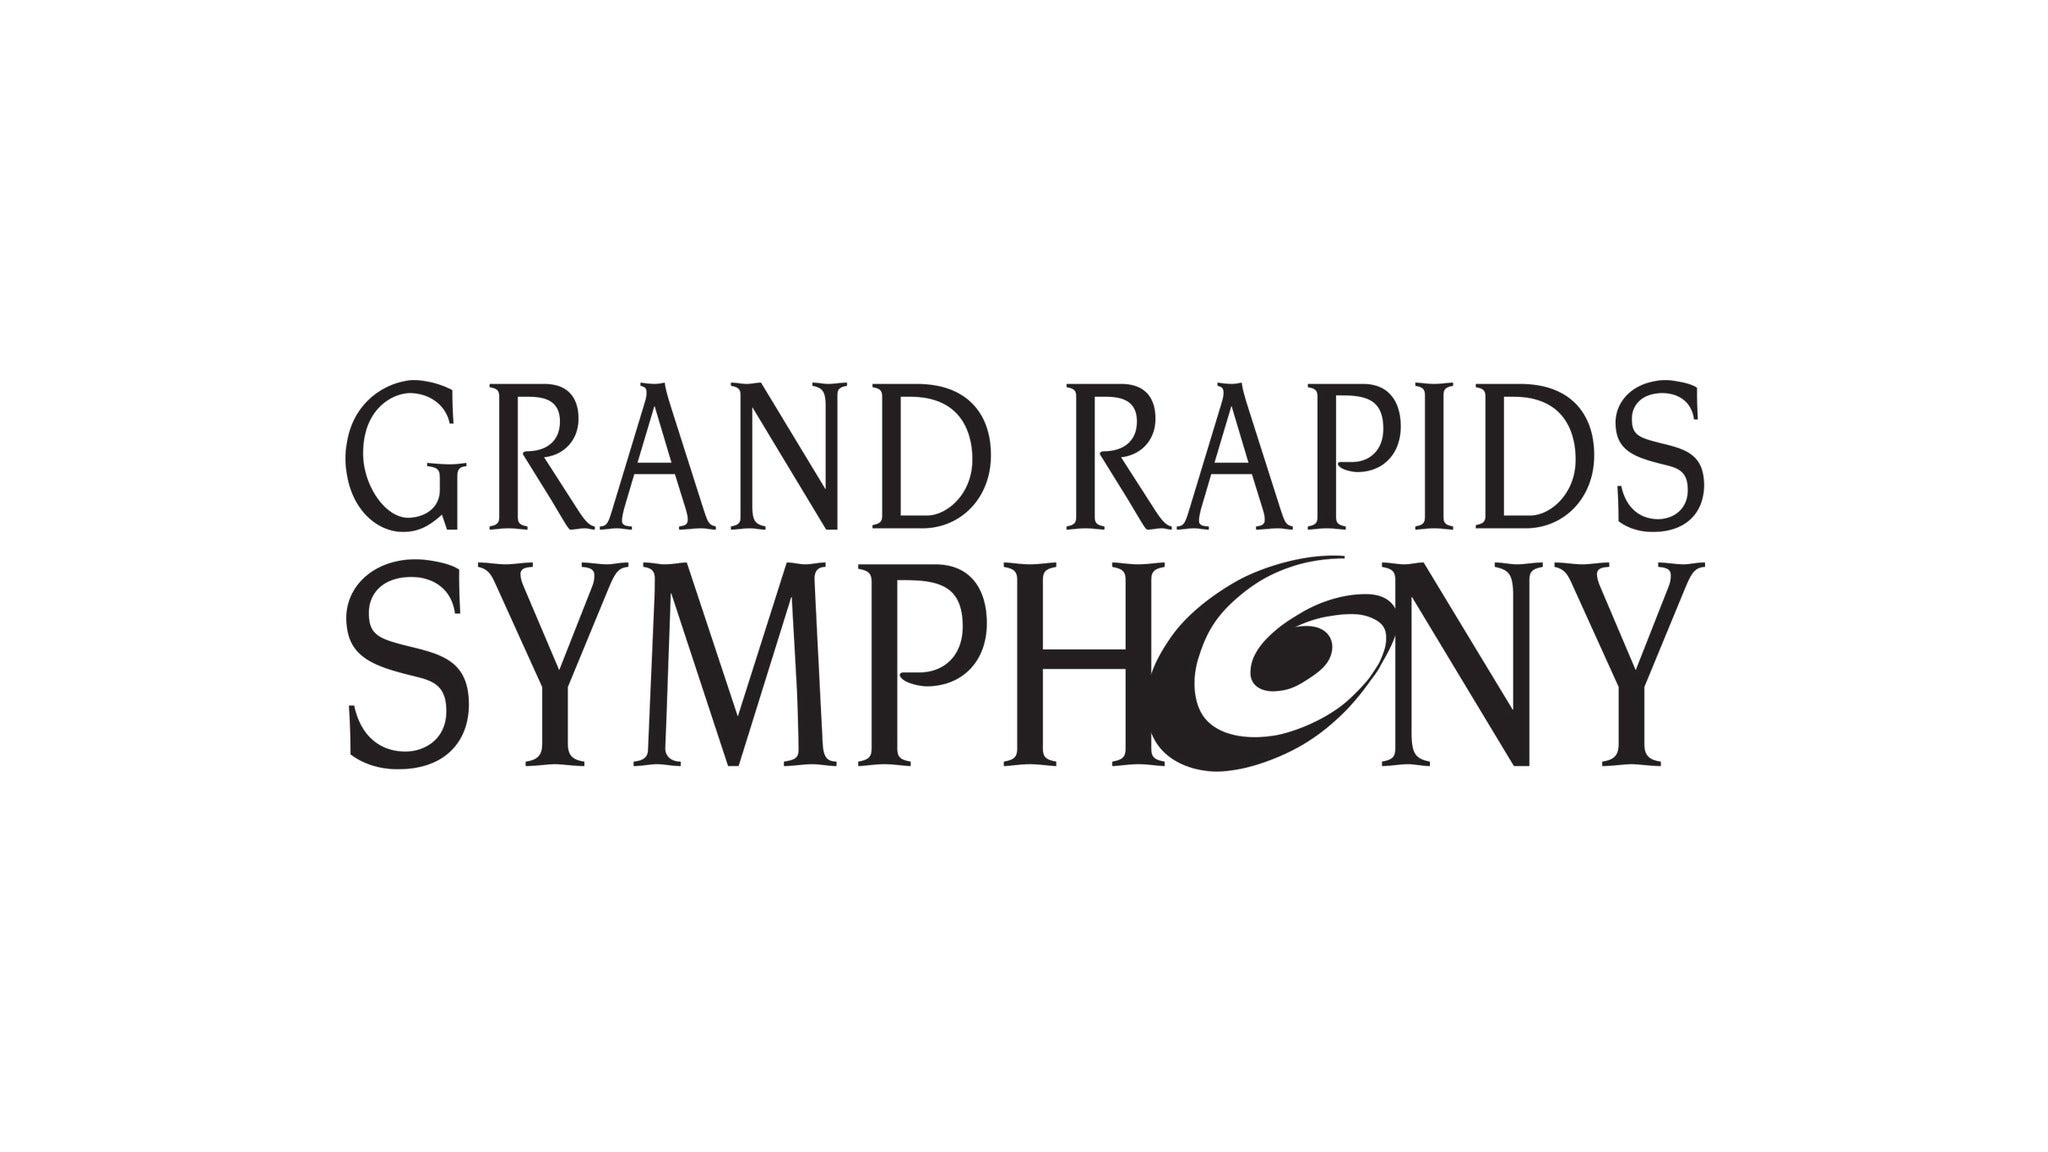 Grand Rapids Symphony: Second City at DeVos Performance Hall - Grand Rapids, MI 49503